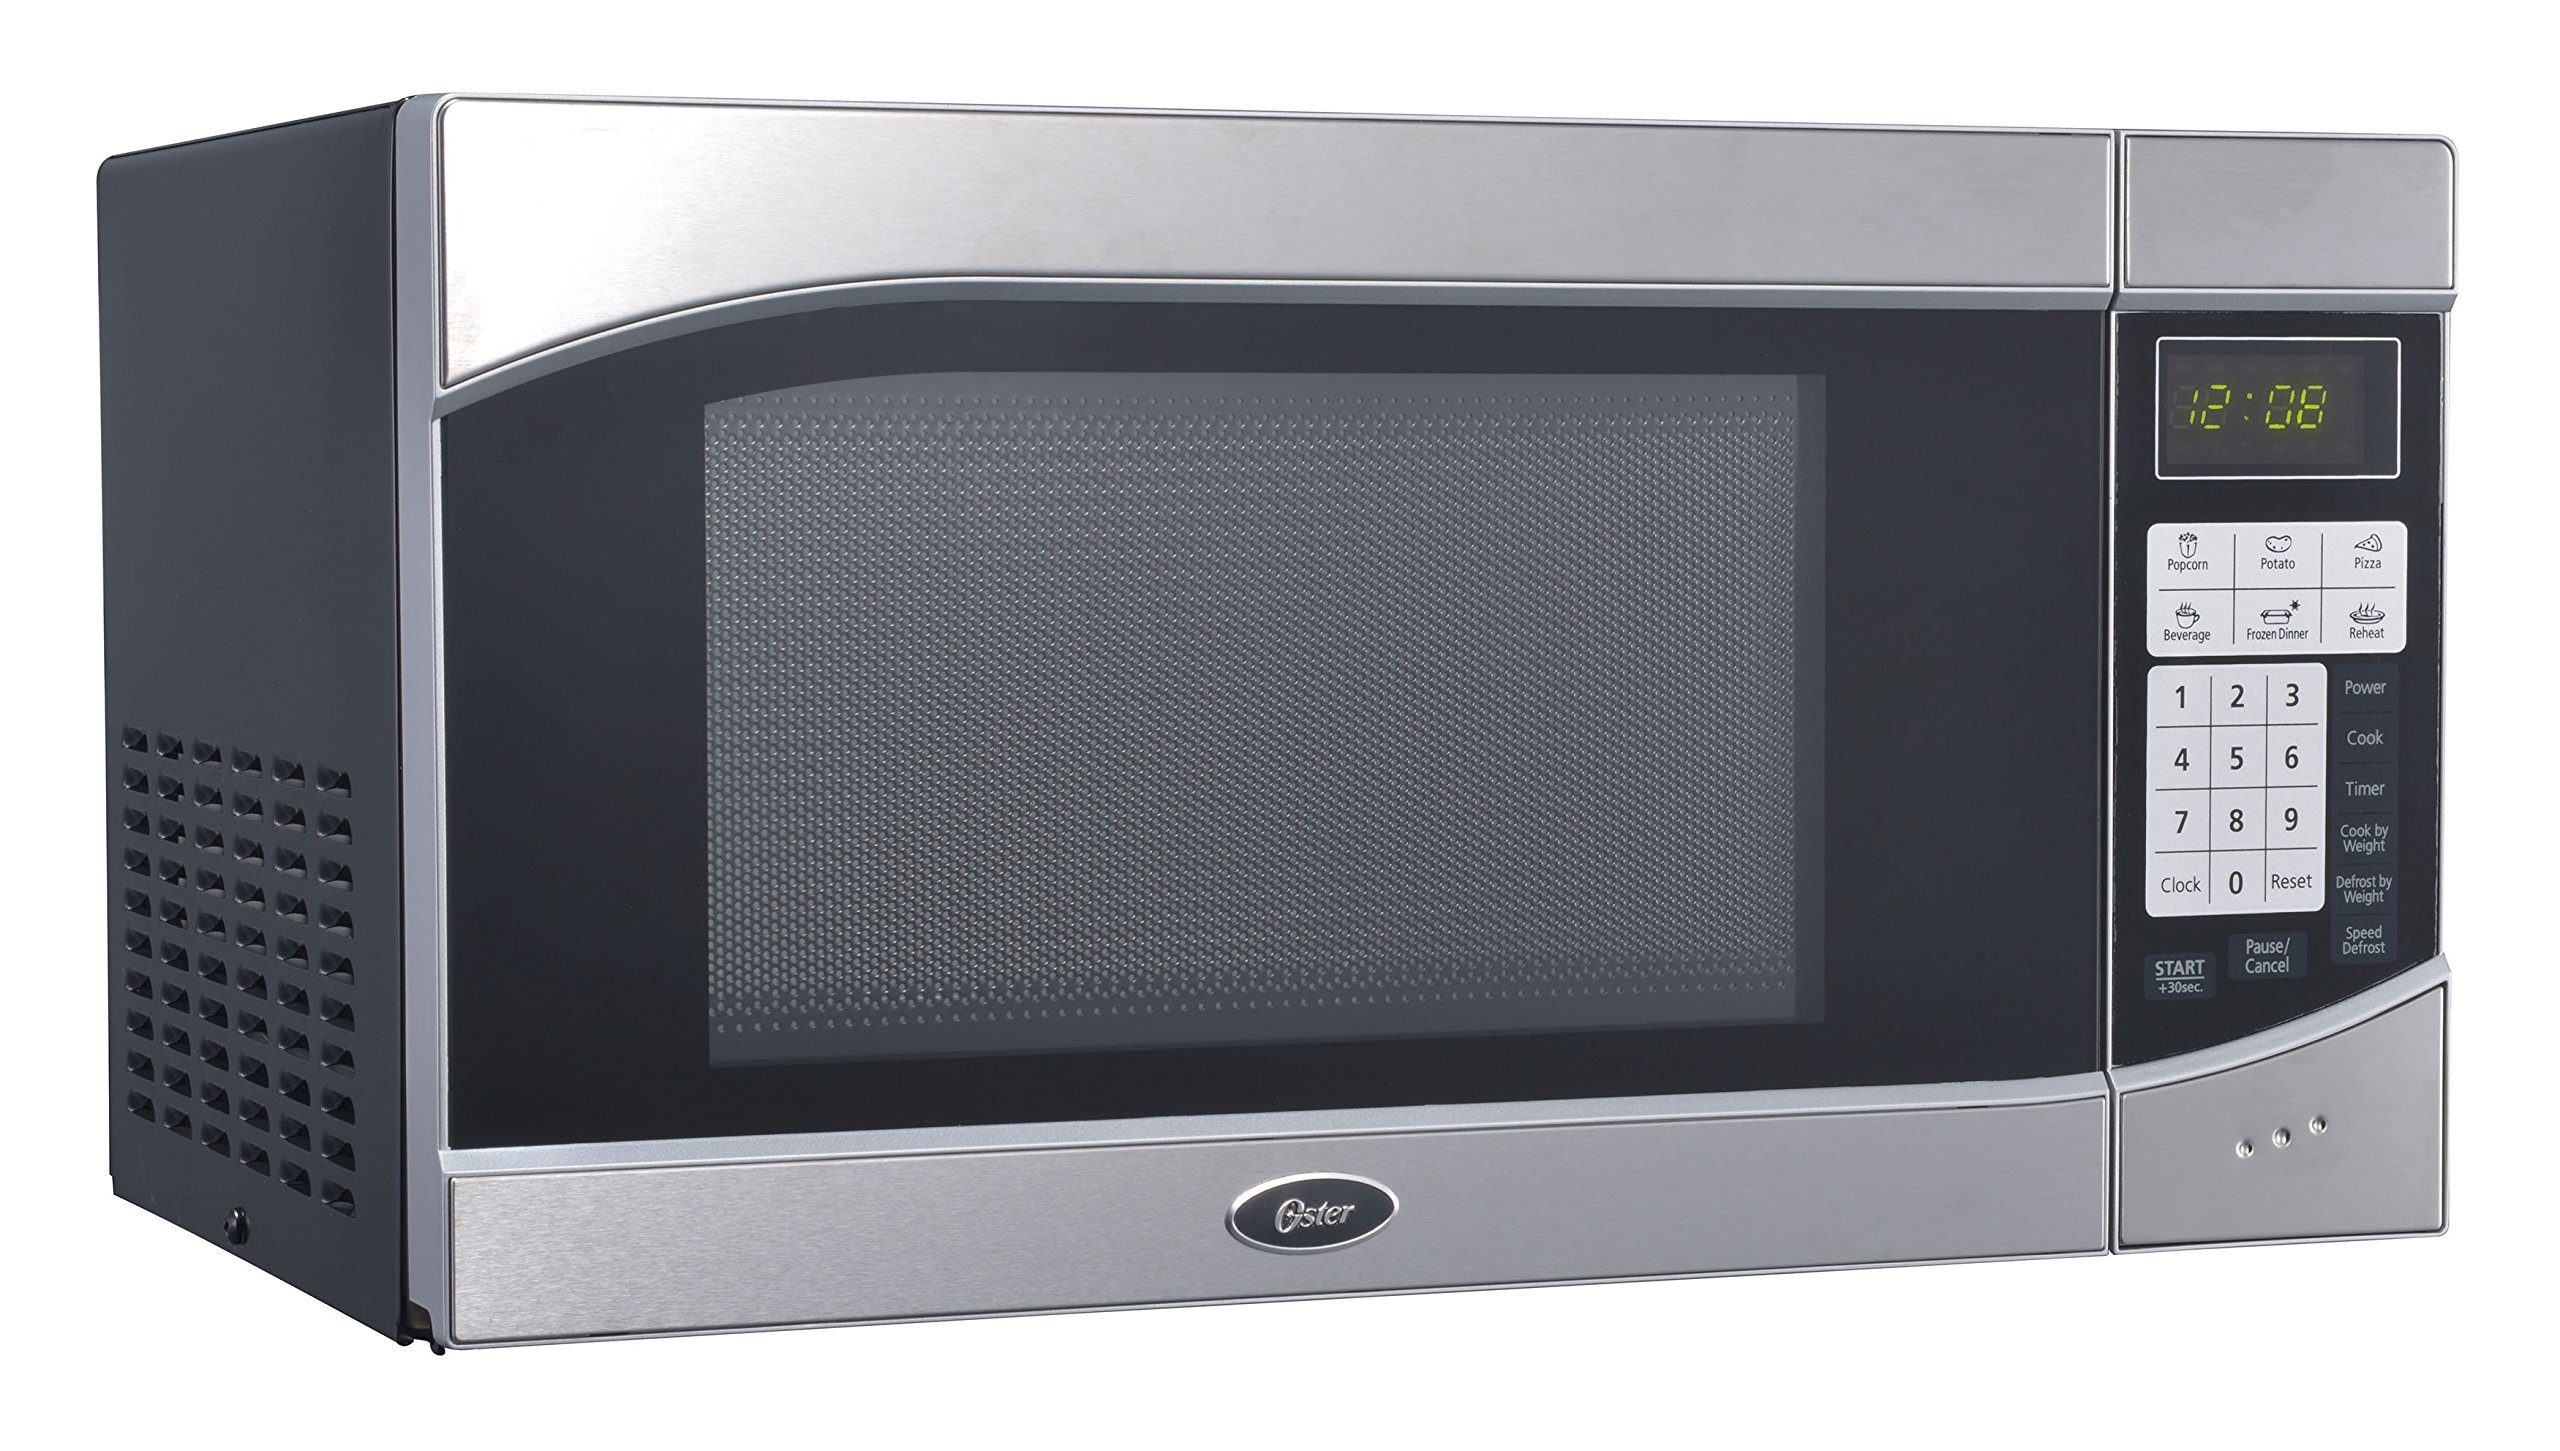 Oster OGH6901 Countertop Microwave Stainless